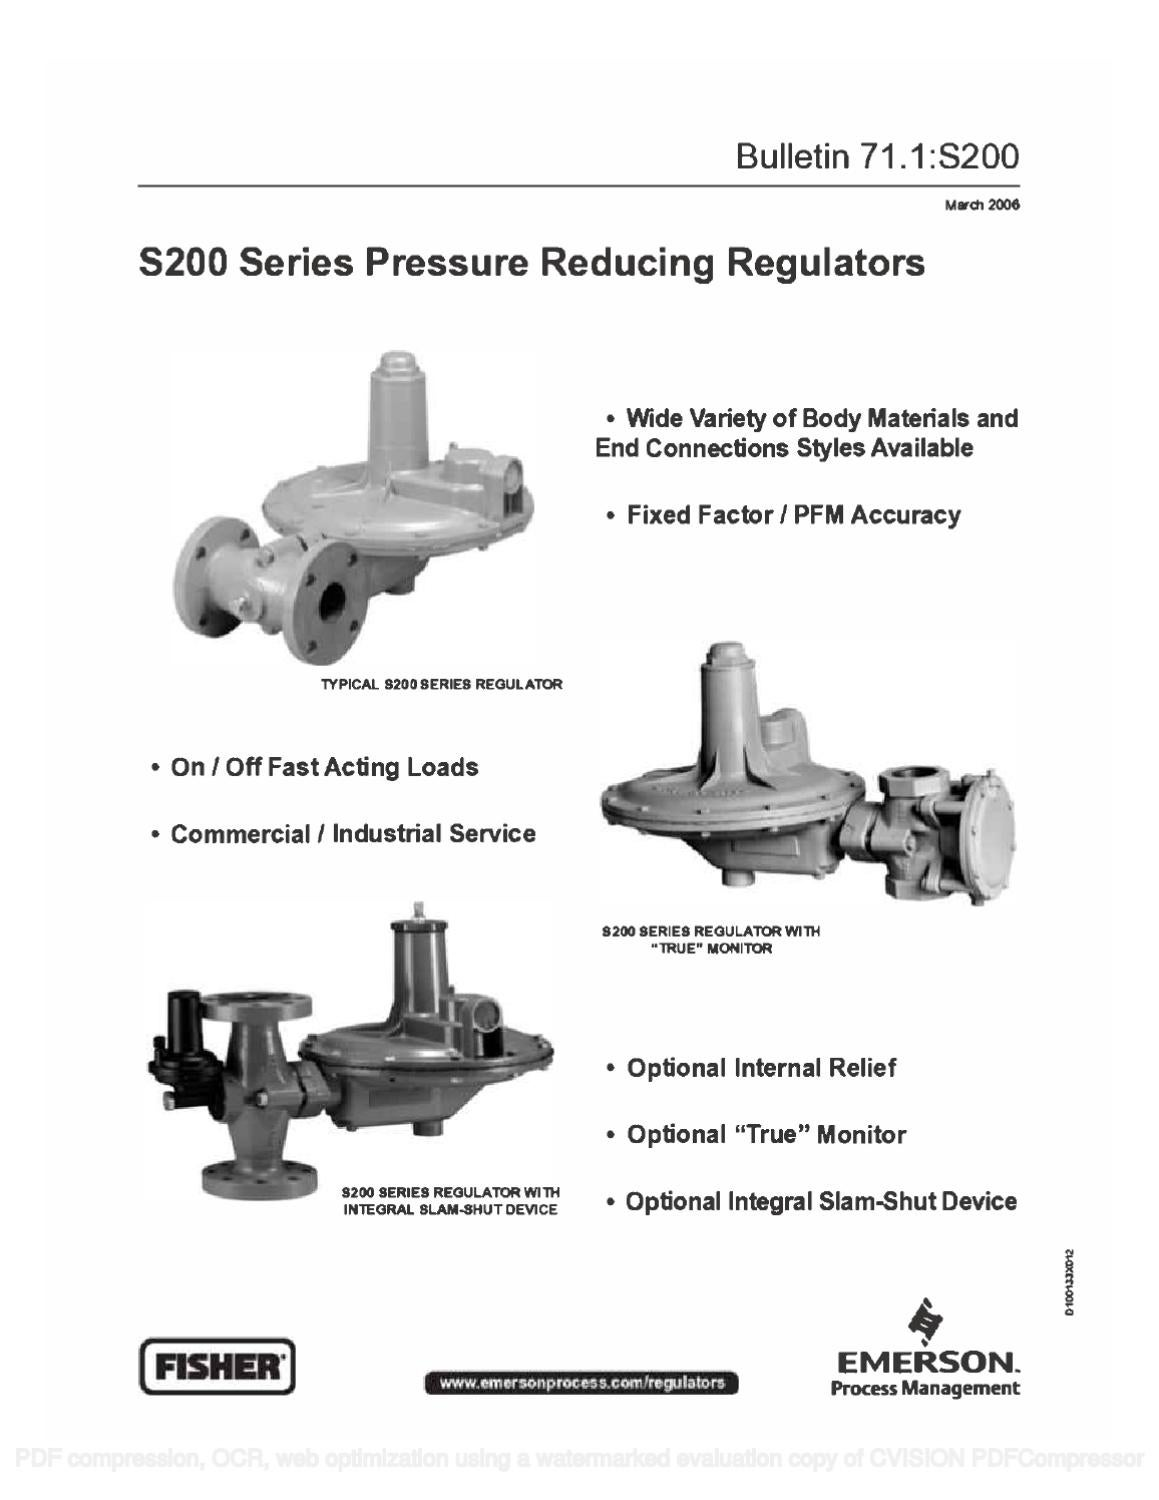 s201 bulletin by rmc process controls  u0026 filtration  inc